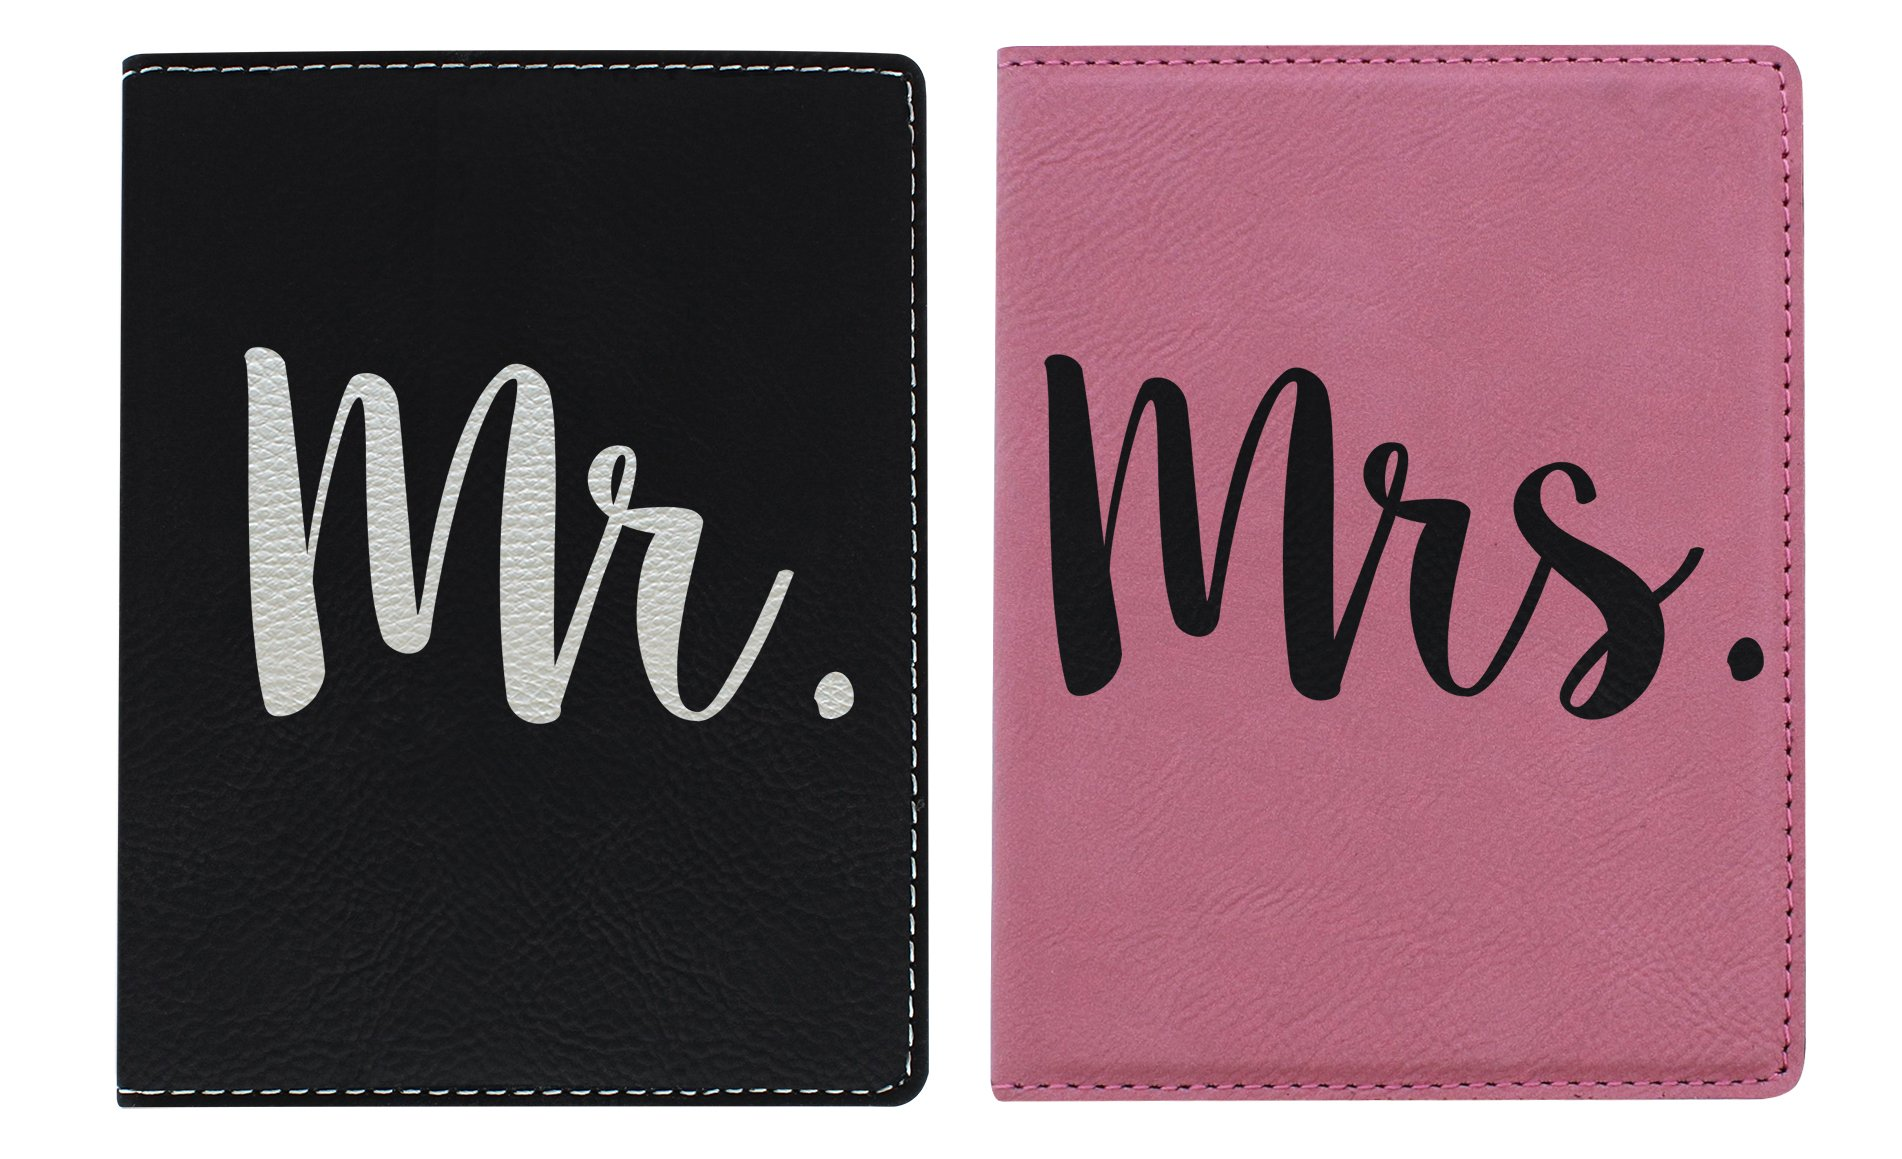 Wedding Gifts Mr Mrs Passport Cover 2-pack Engraved Leather Passport Holders Pink & Black Bundle